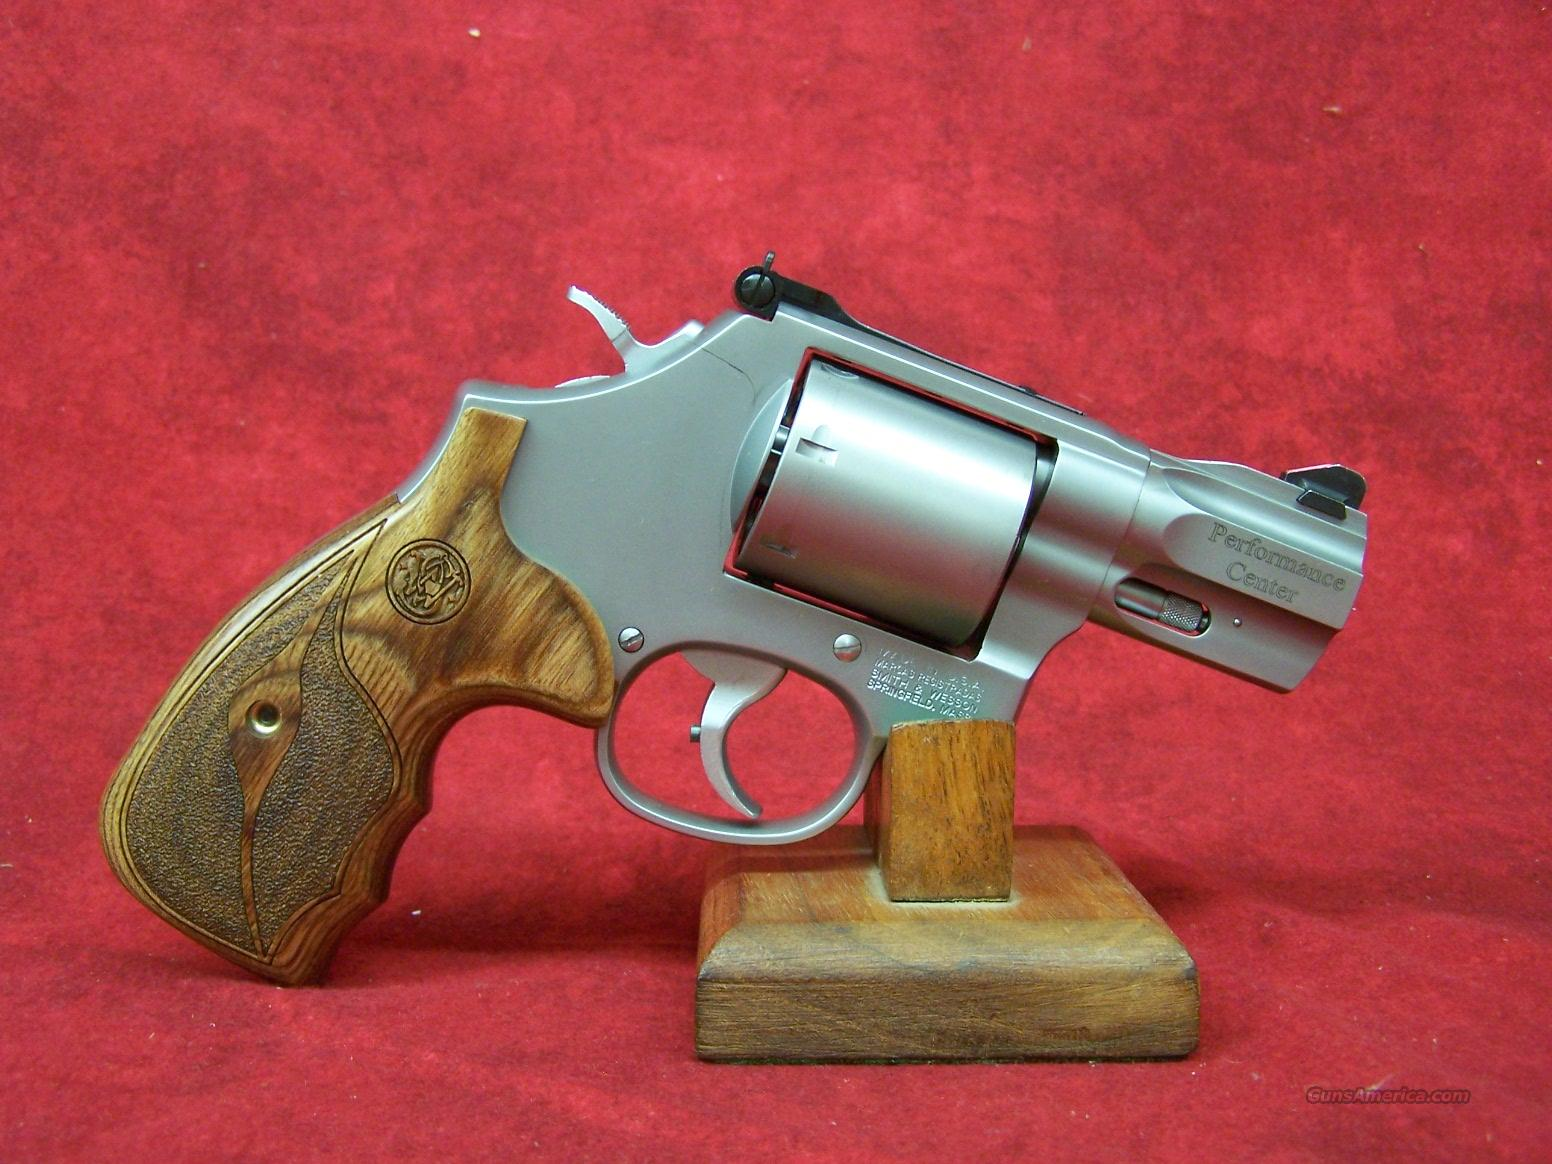 "Smith & Wesson 686 Performance Center 2 1/2"" .357 Mag (170346)  Guns > Pistols > Smith & Wesson Revolvers > Performance Center"